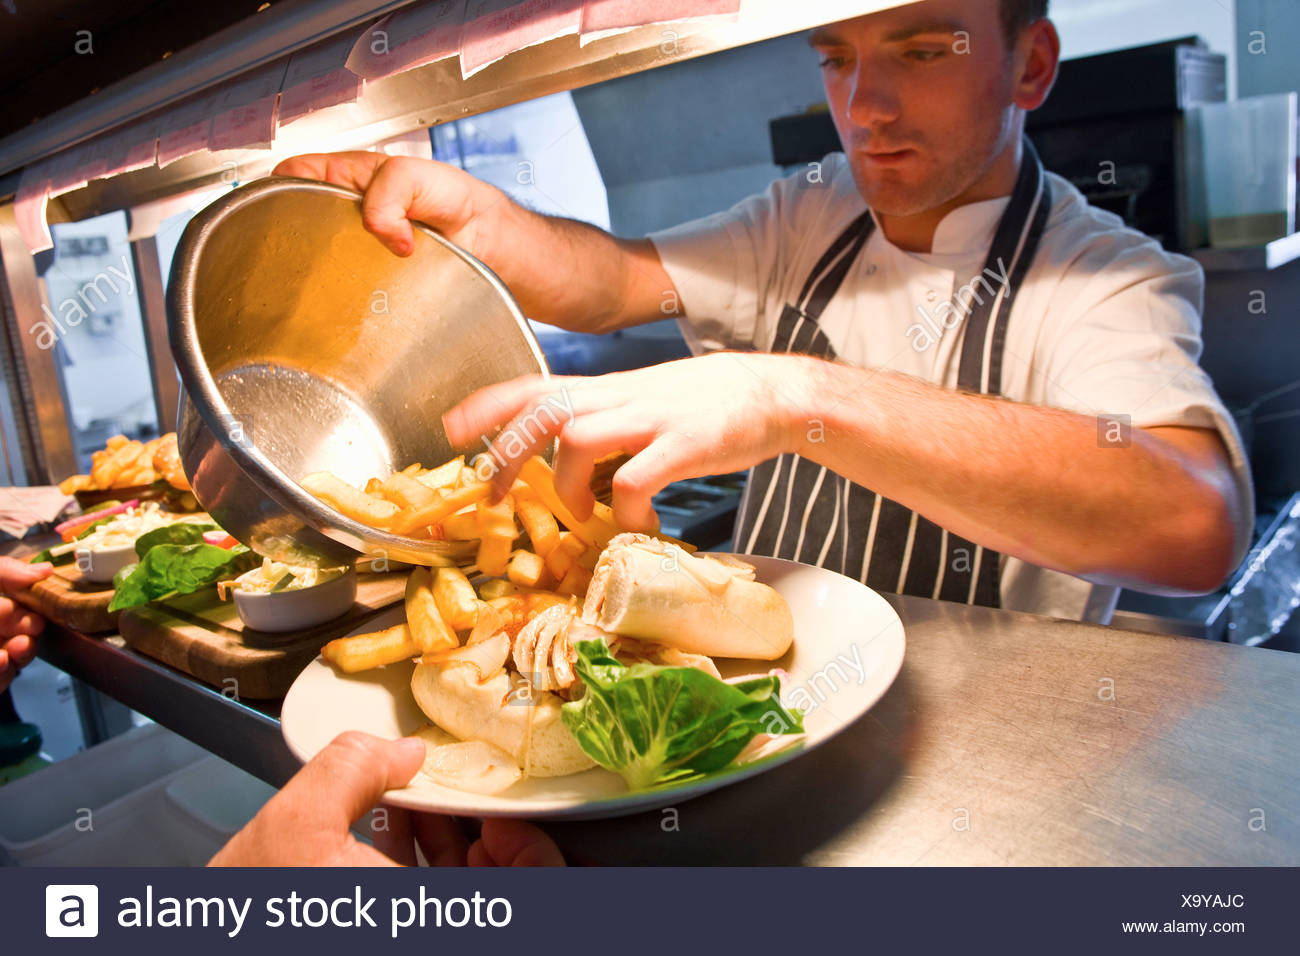 Chef with dish in restaurant kitchen - Stock Image